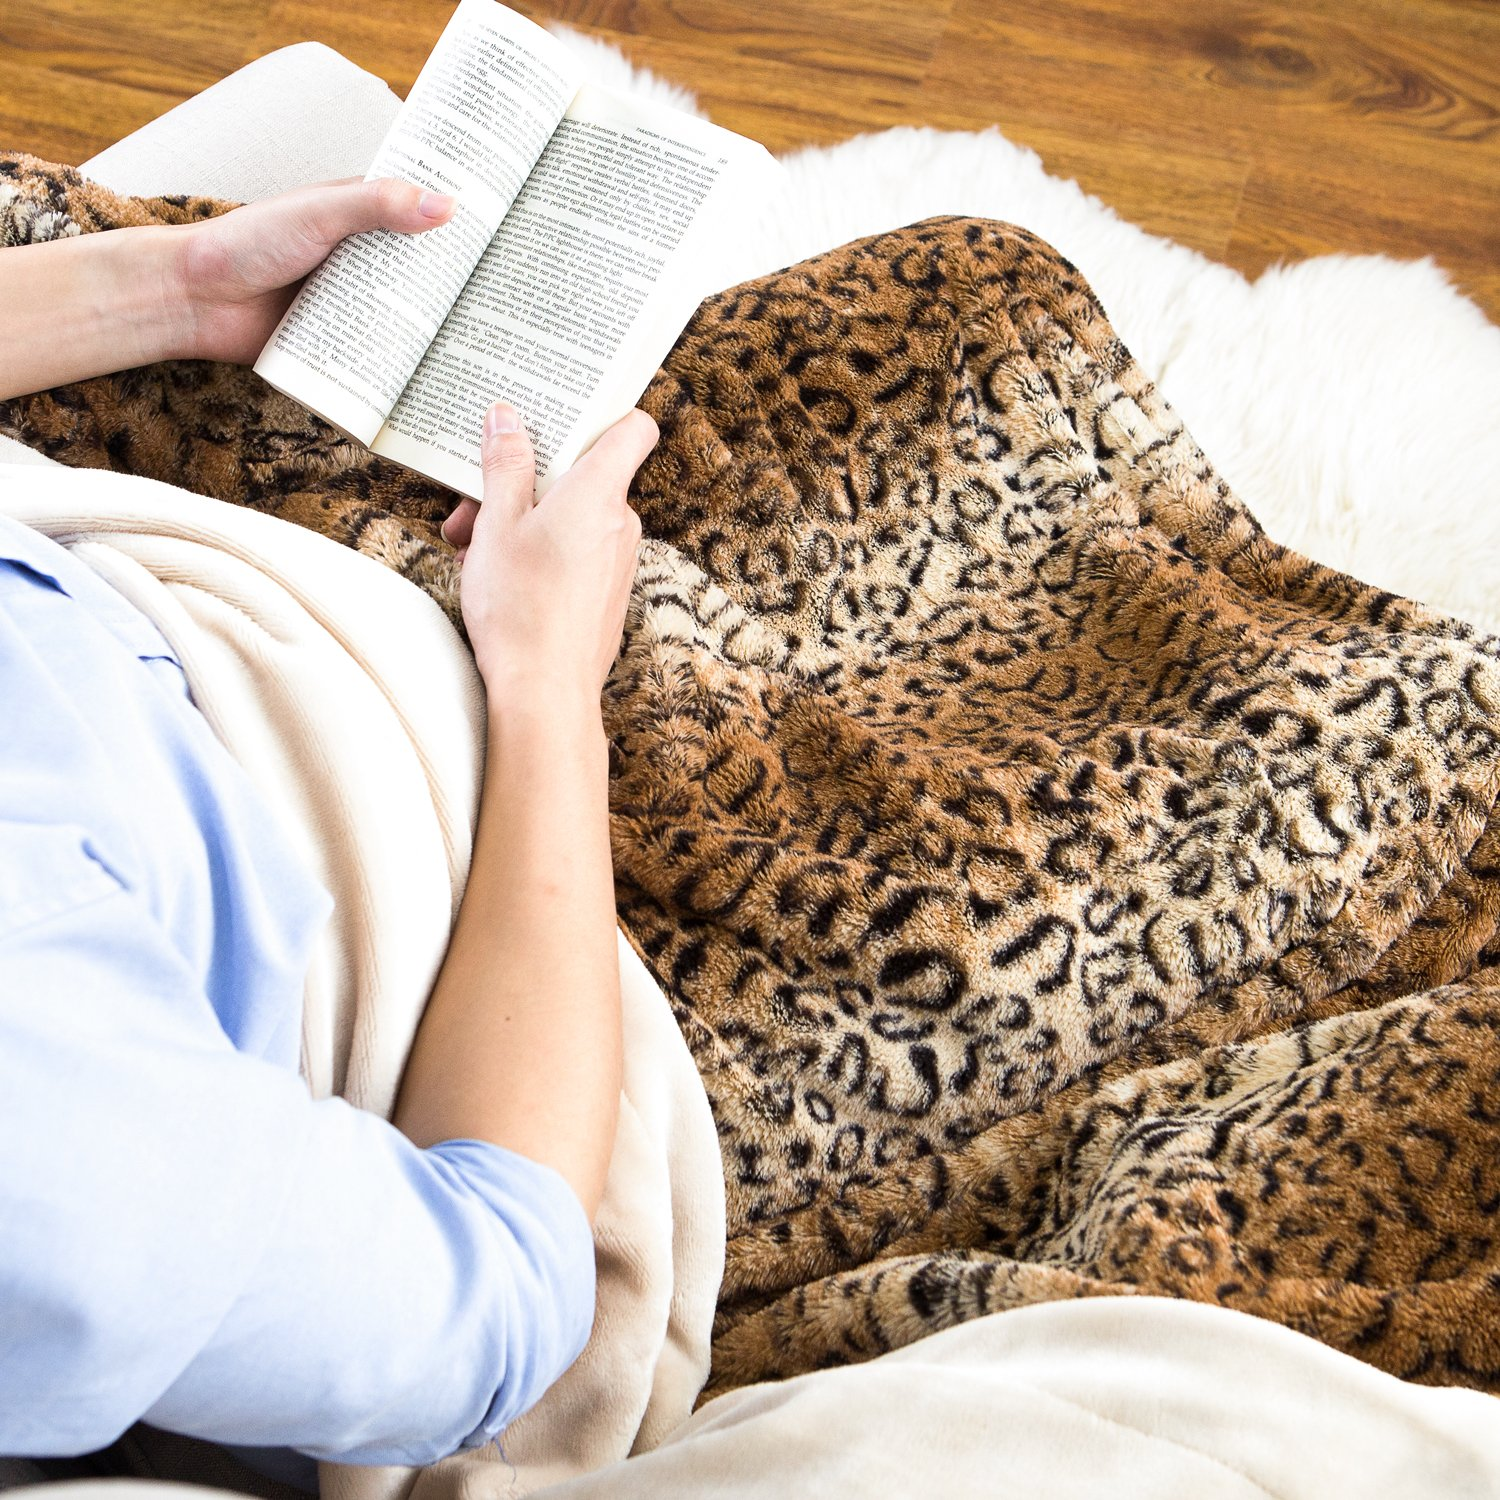 BEDSURE More than comfort Leopard Throw Blanket Brown Faux Fur Fleece Bed Throw 130 x 150cm, Soft Warm Fluffy Animal Printed Throws Decorative Blankets Reversible with Sherpa by Bedsure